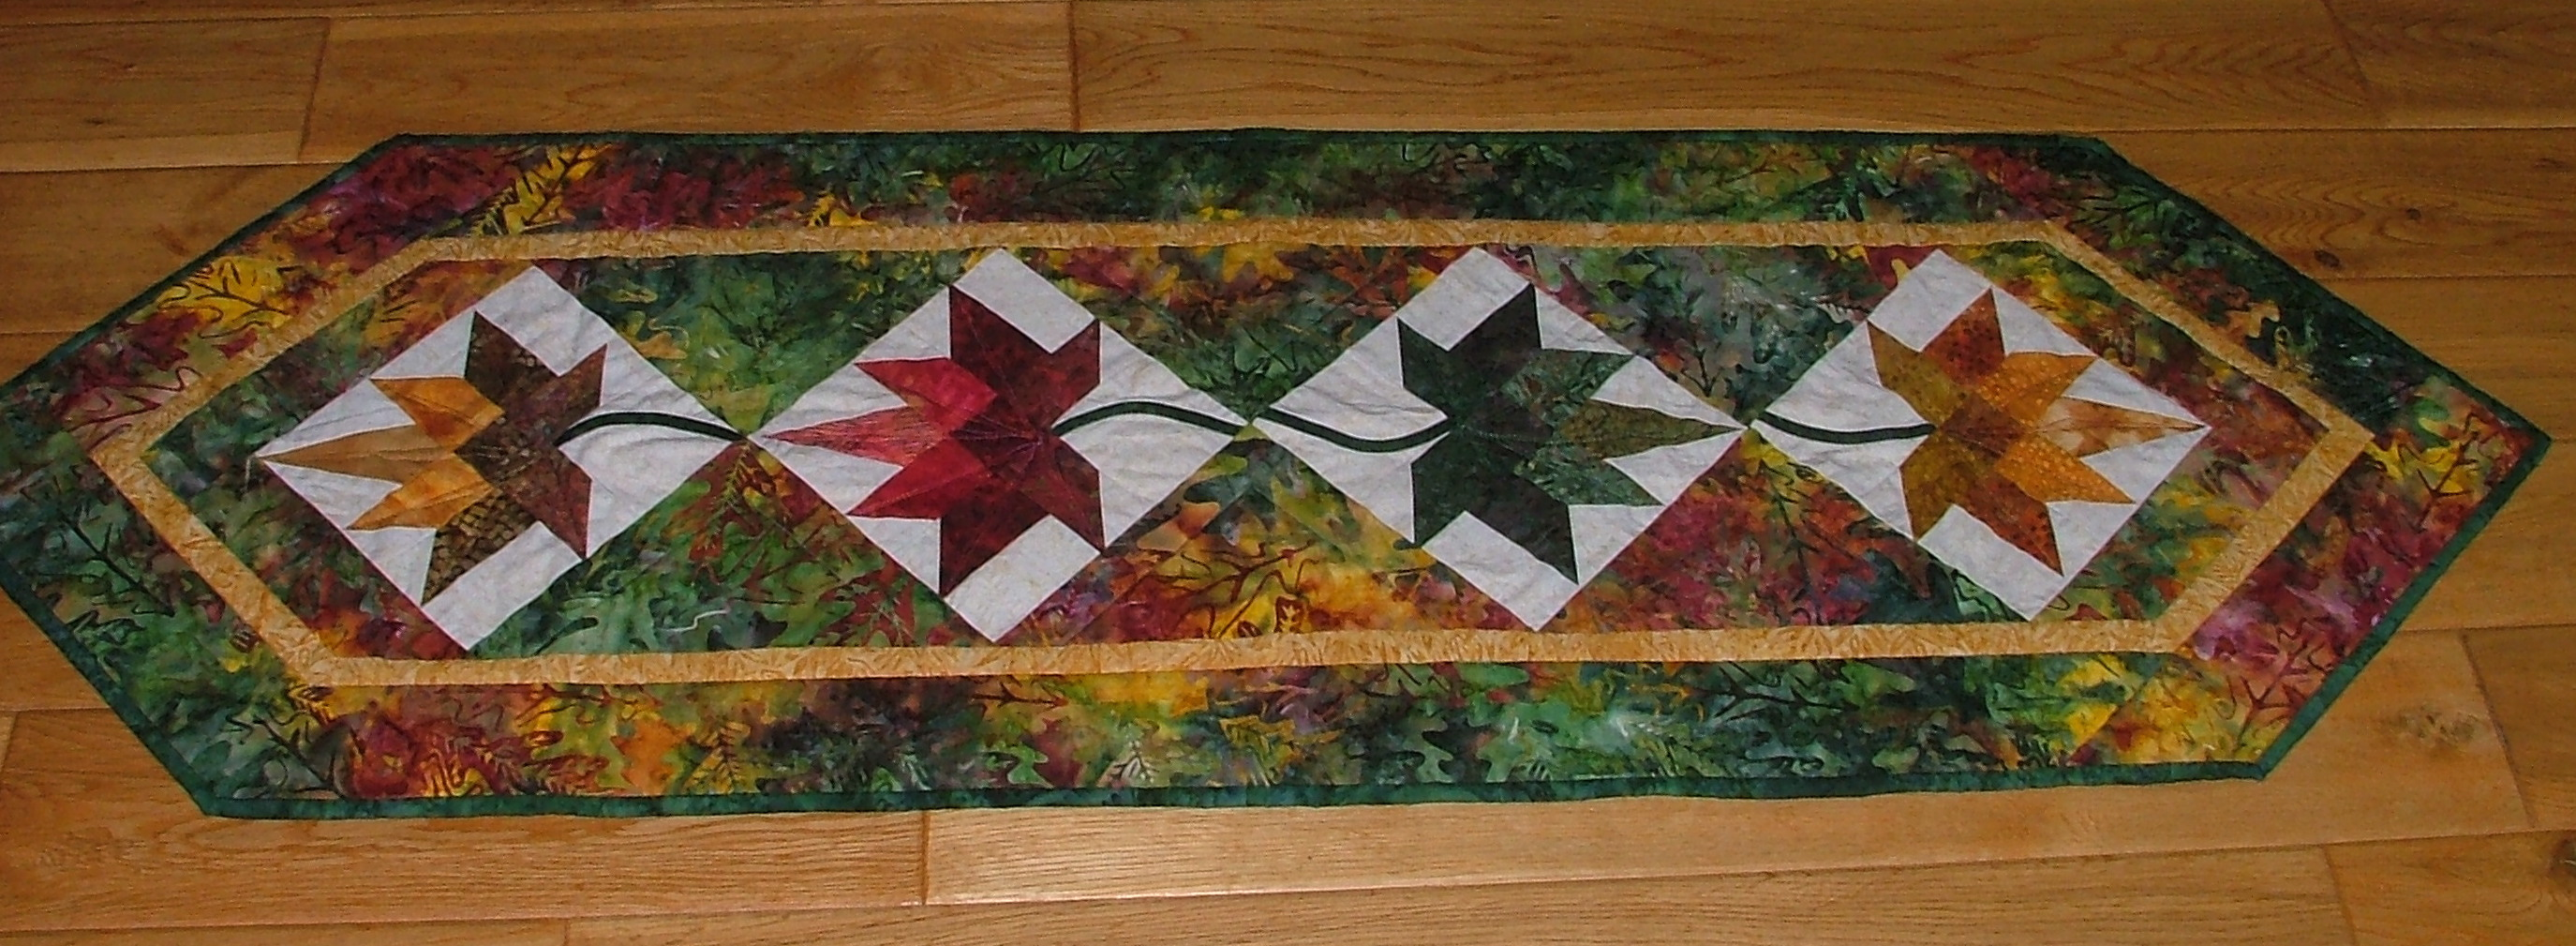 Maple Leaf Quilt Pattern Table Runner : MAPLE LEAF TABLE RUNNER Portsmouth Fabric Co